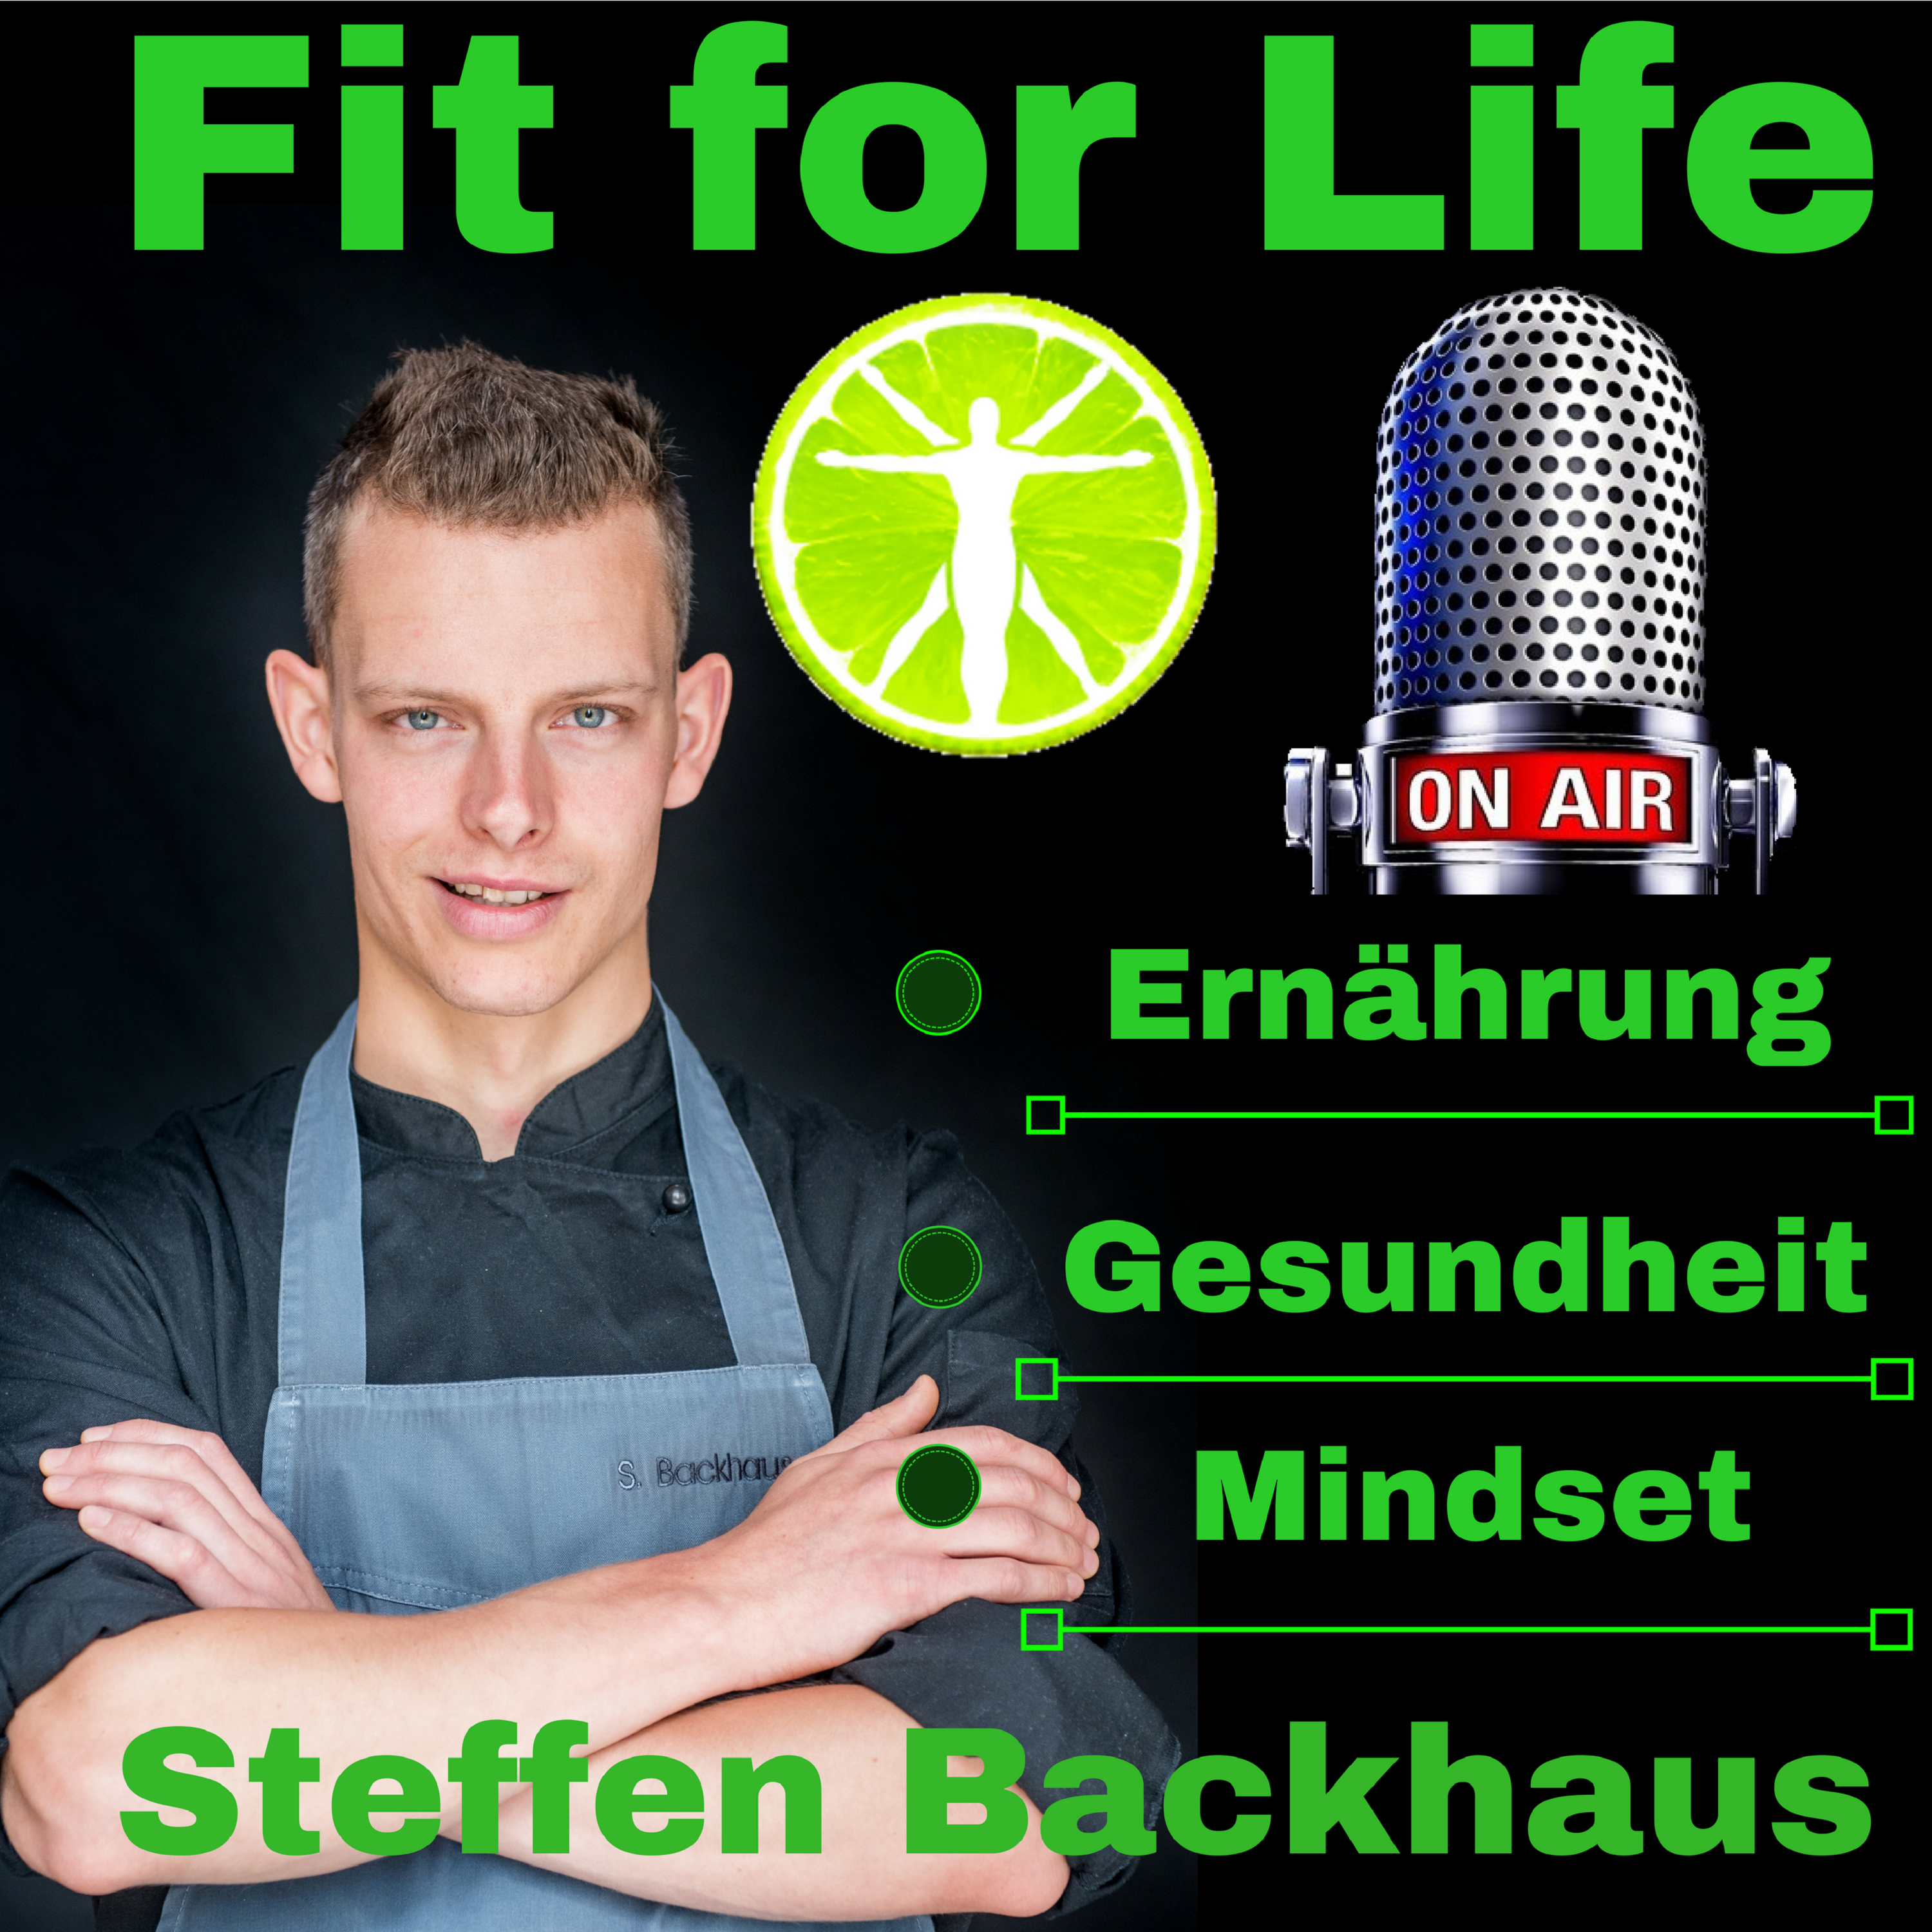 Fit for life ernährung